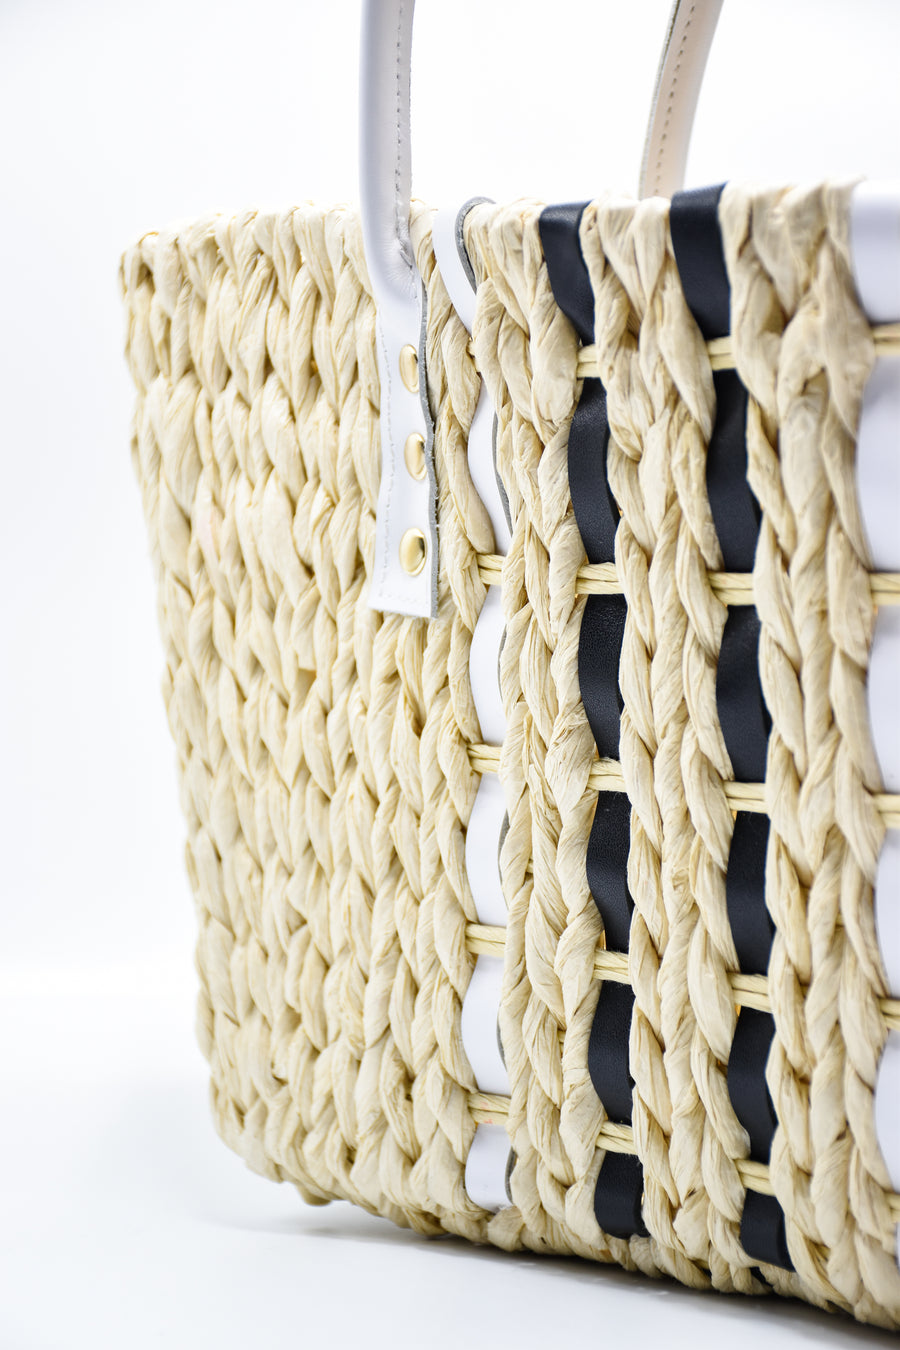 Close up of small woven straw tote bag laced with black and white leather.